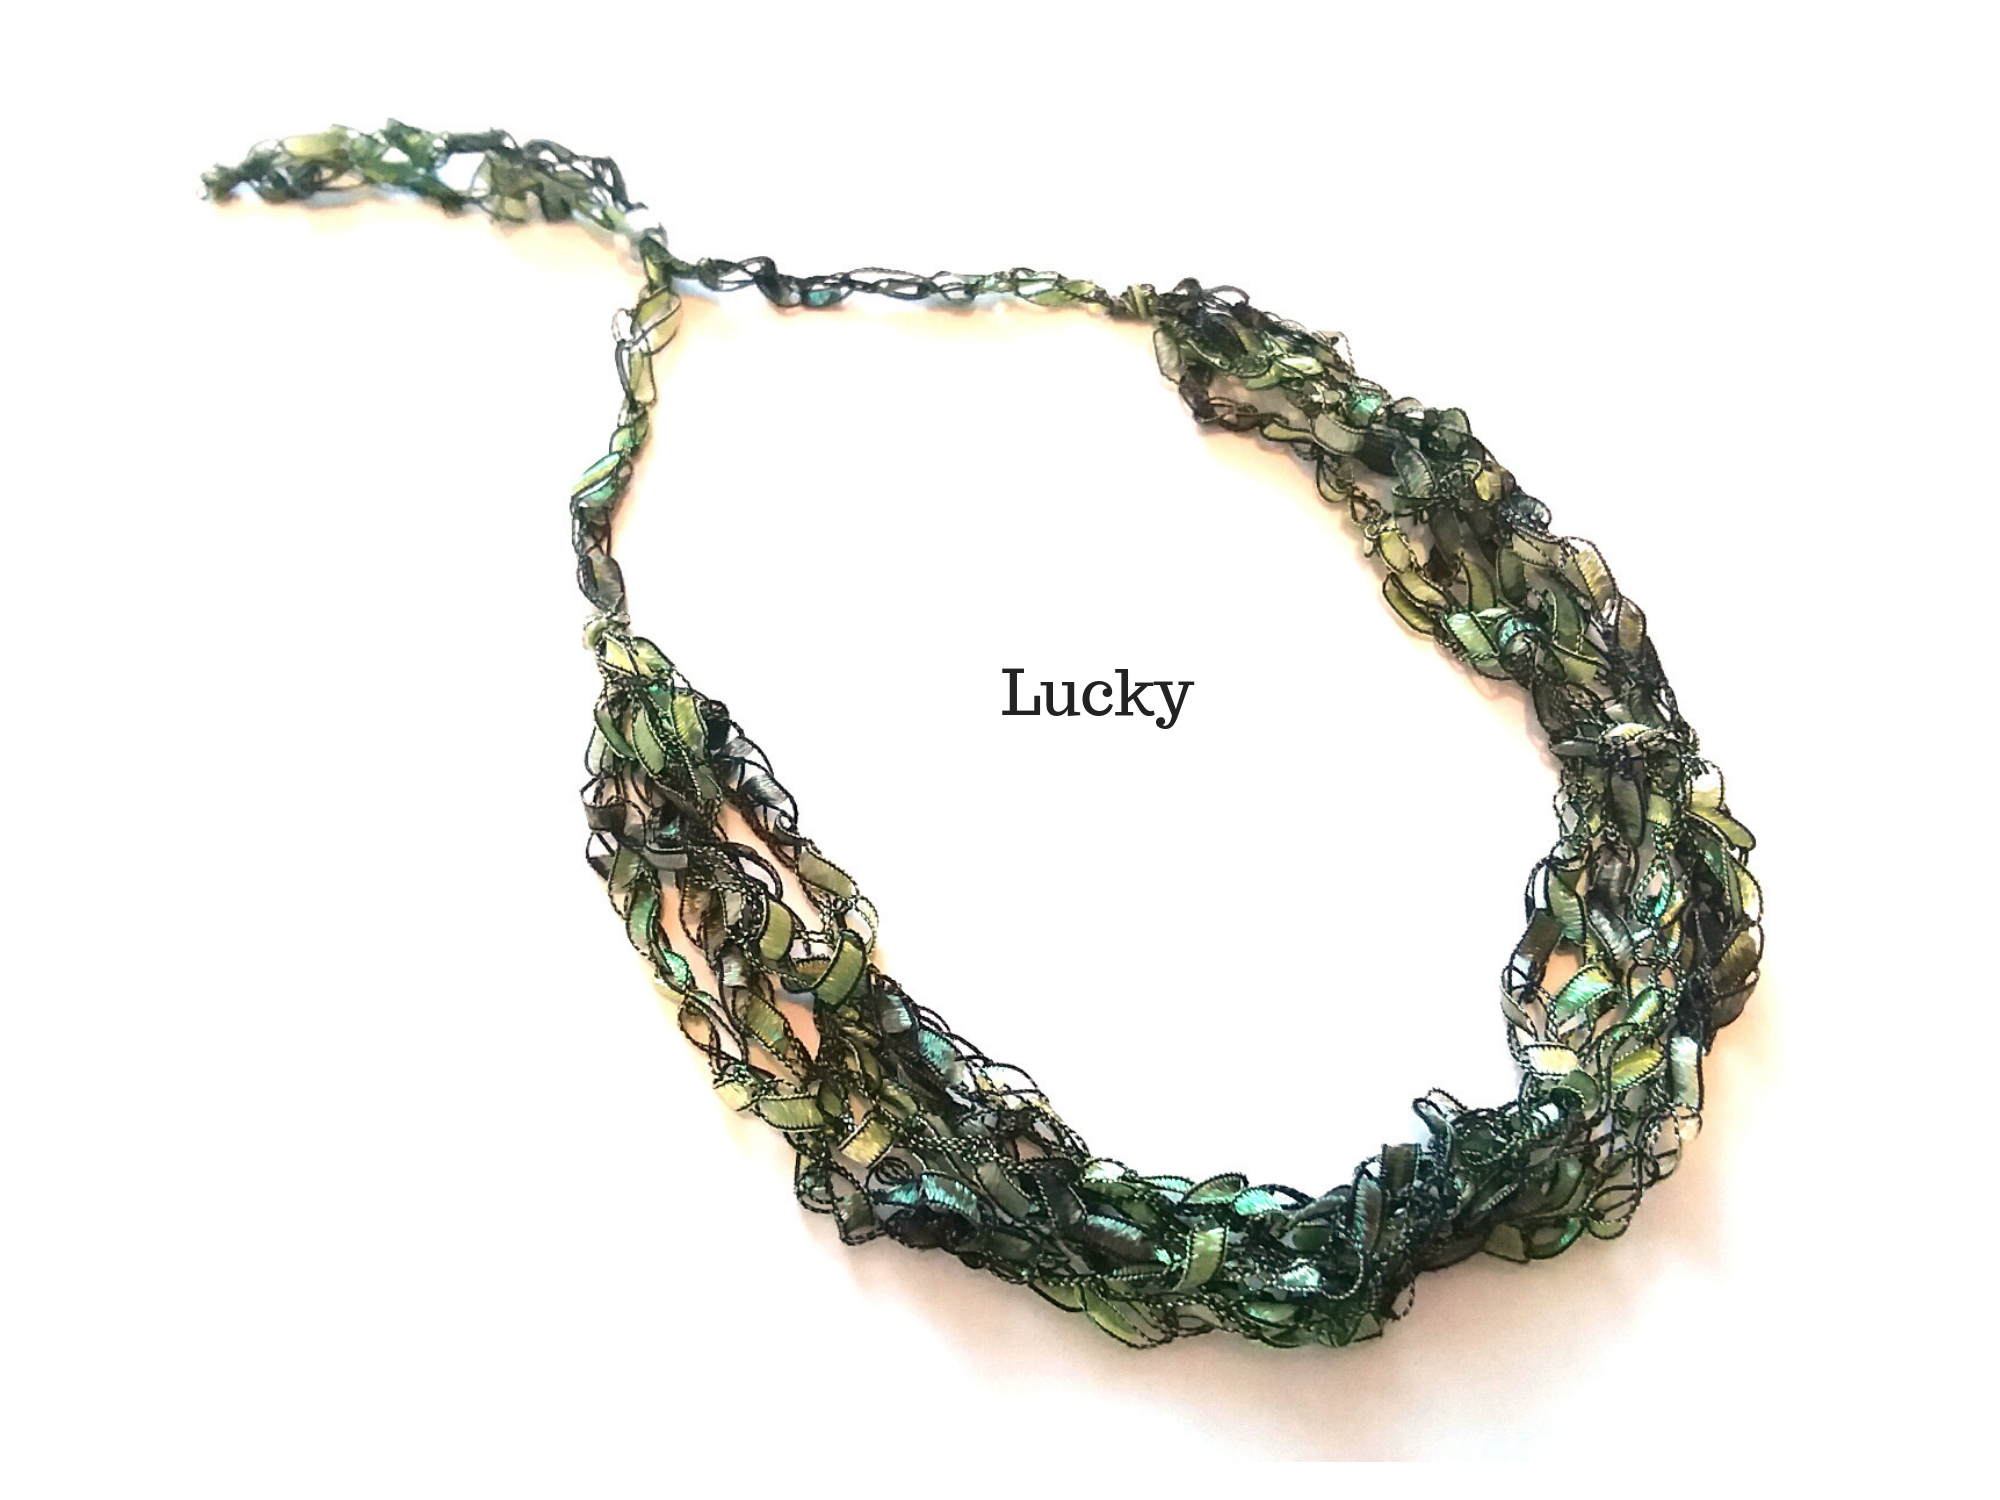 Crocheted Trellis Yarn Necklace Multi-Strand - Lucky